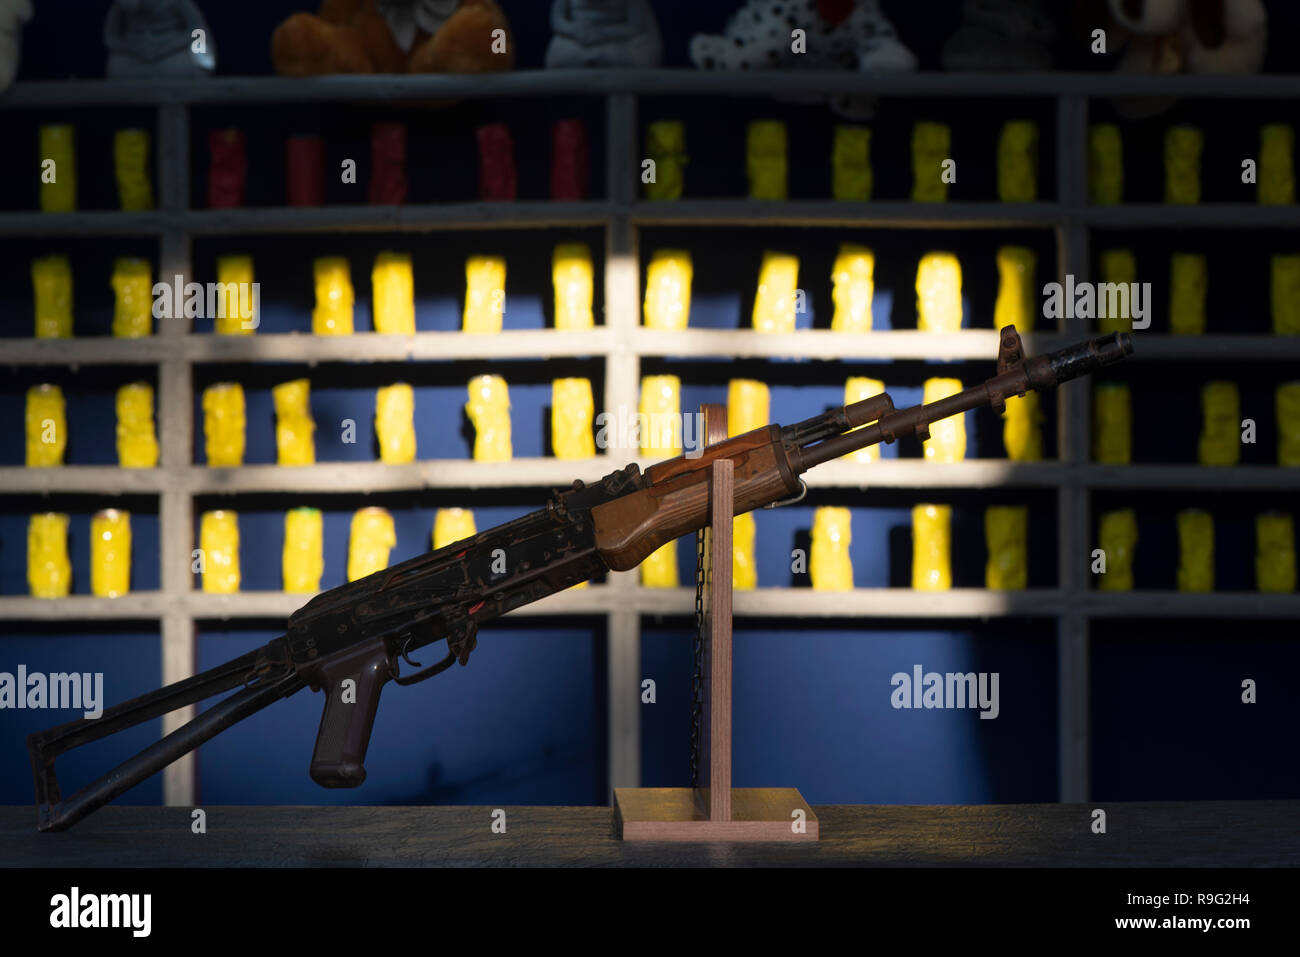 shooting gallery, air gun in the foreground. in the background, the banks are dented from the shots. on top of toys as prizes. - Stock Image